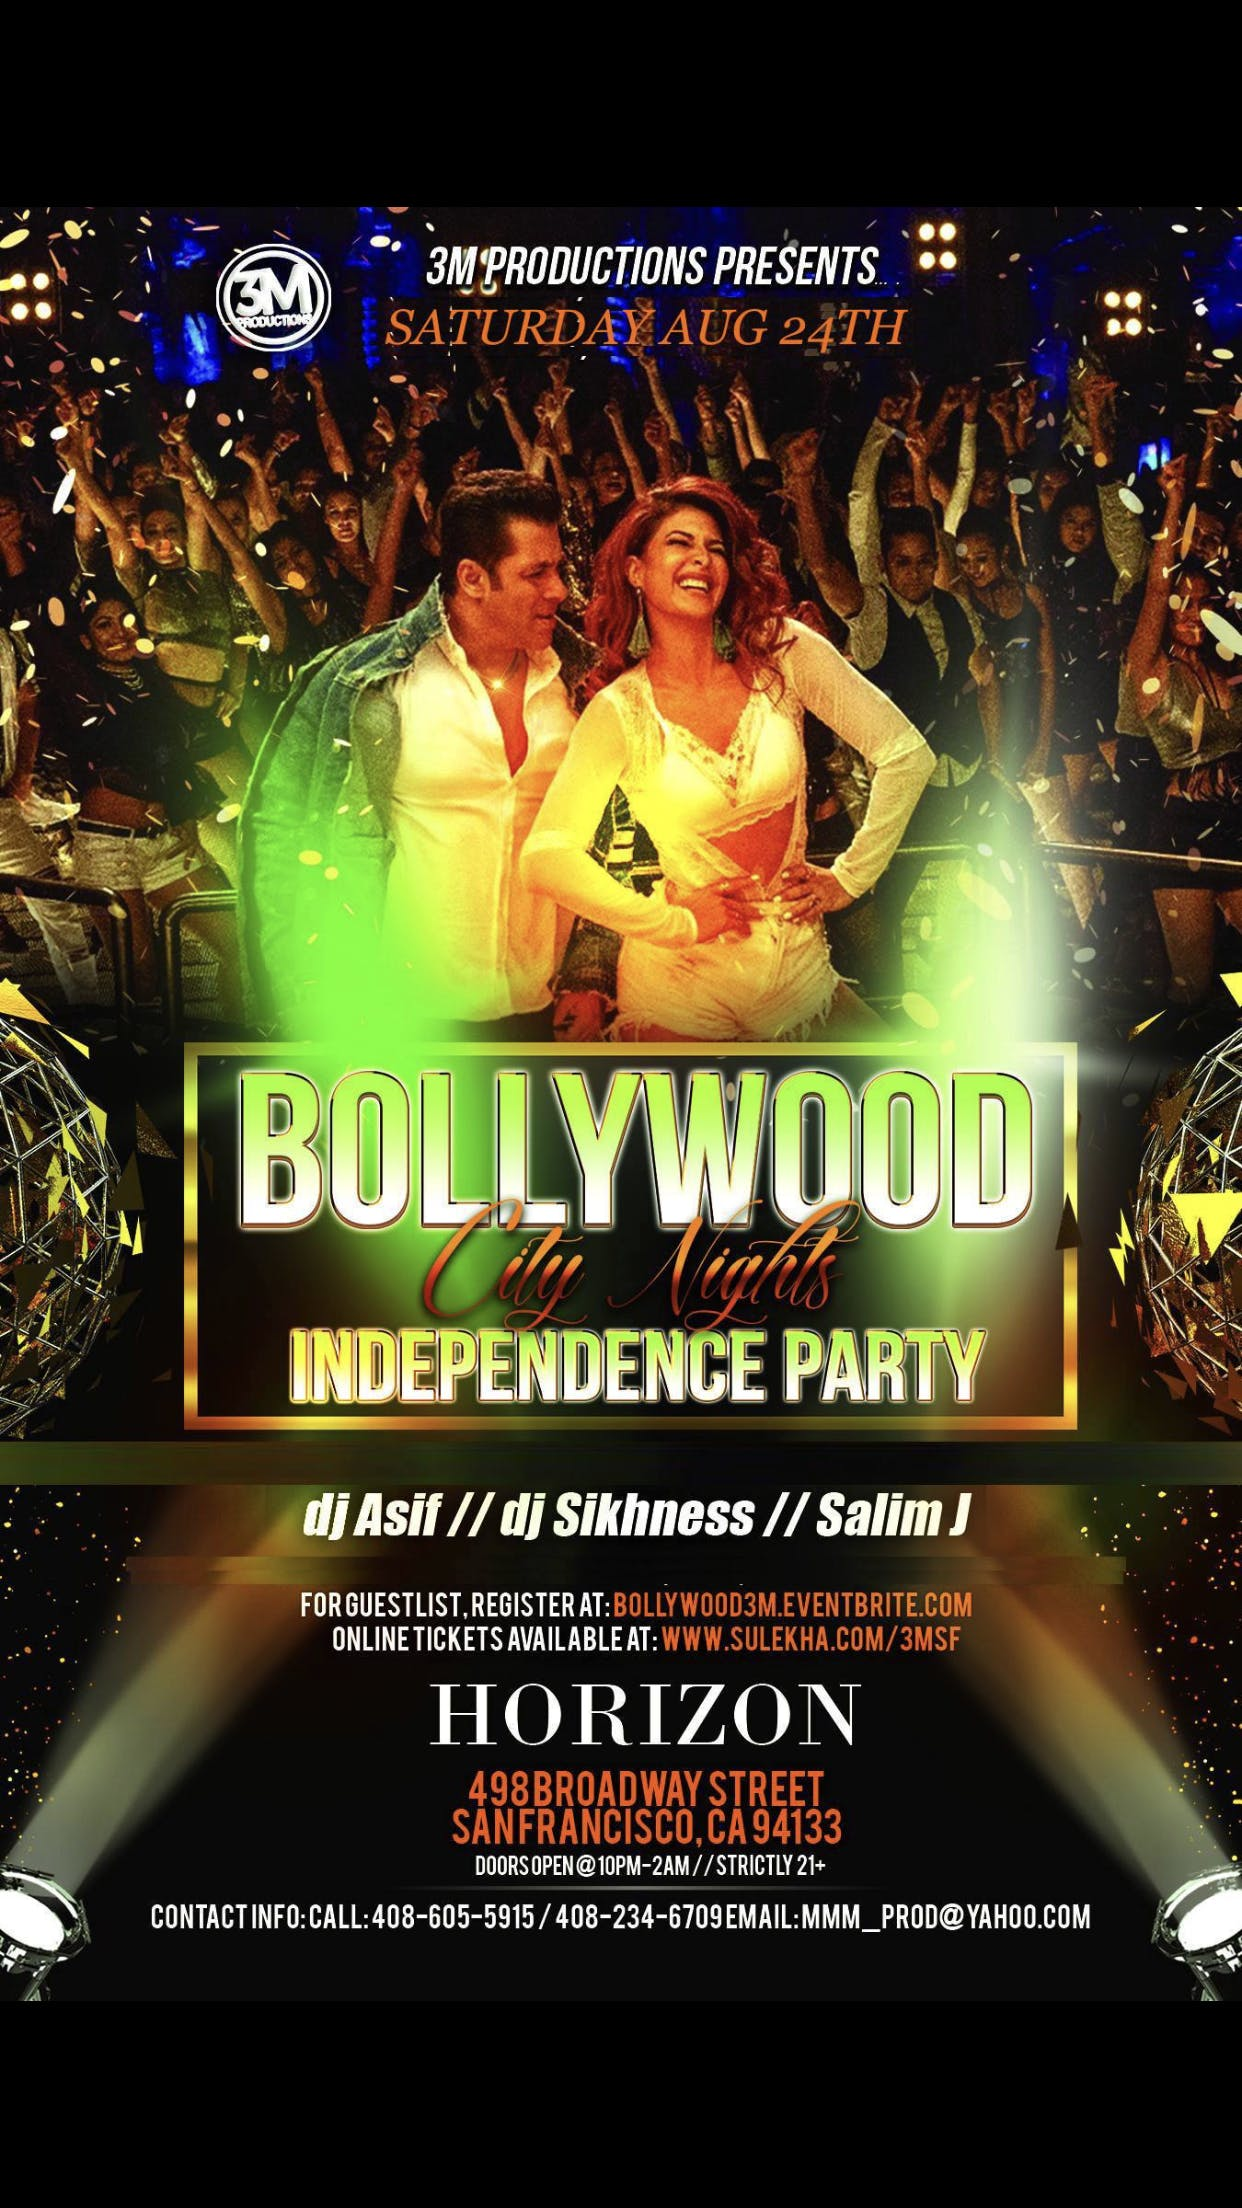 Bollywood City Nights - Independence Party in SF at Horizon